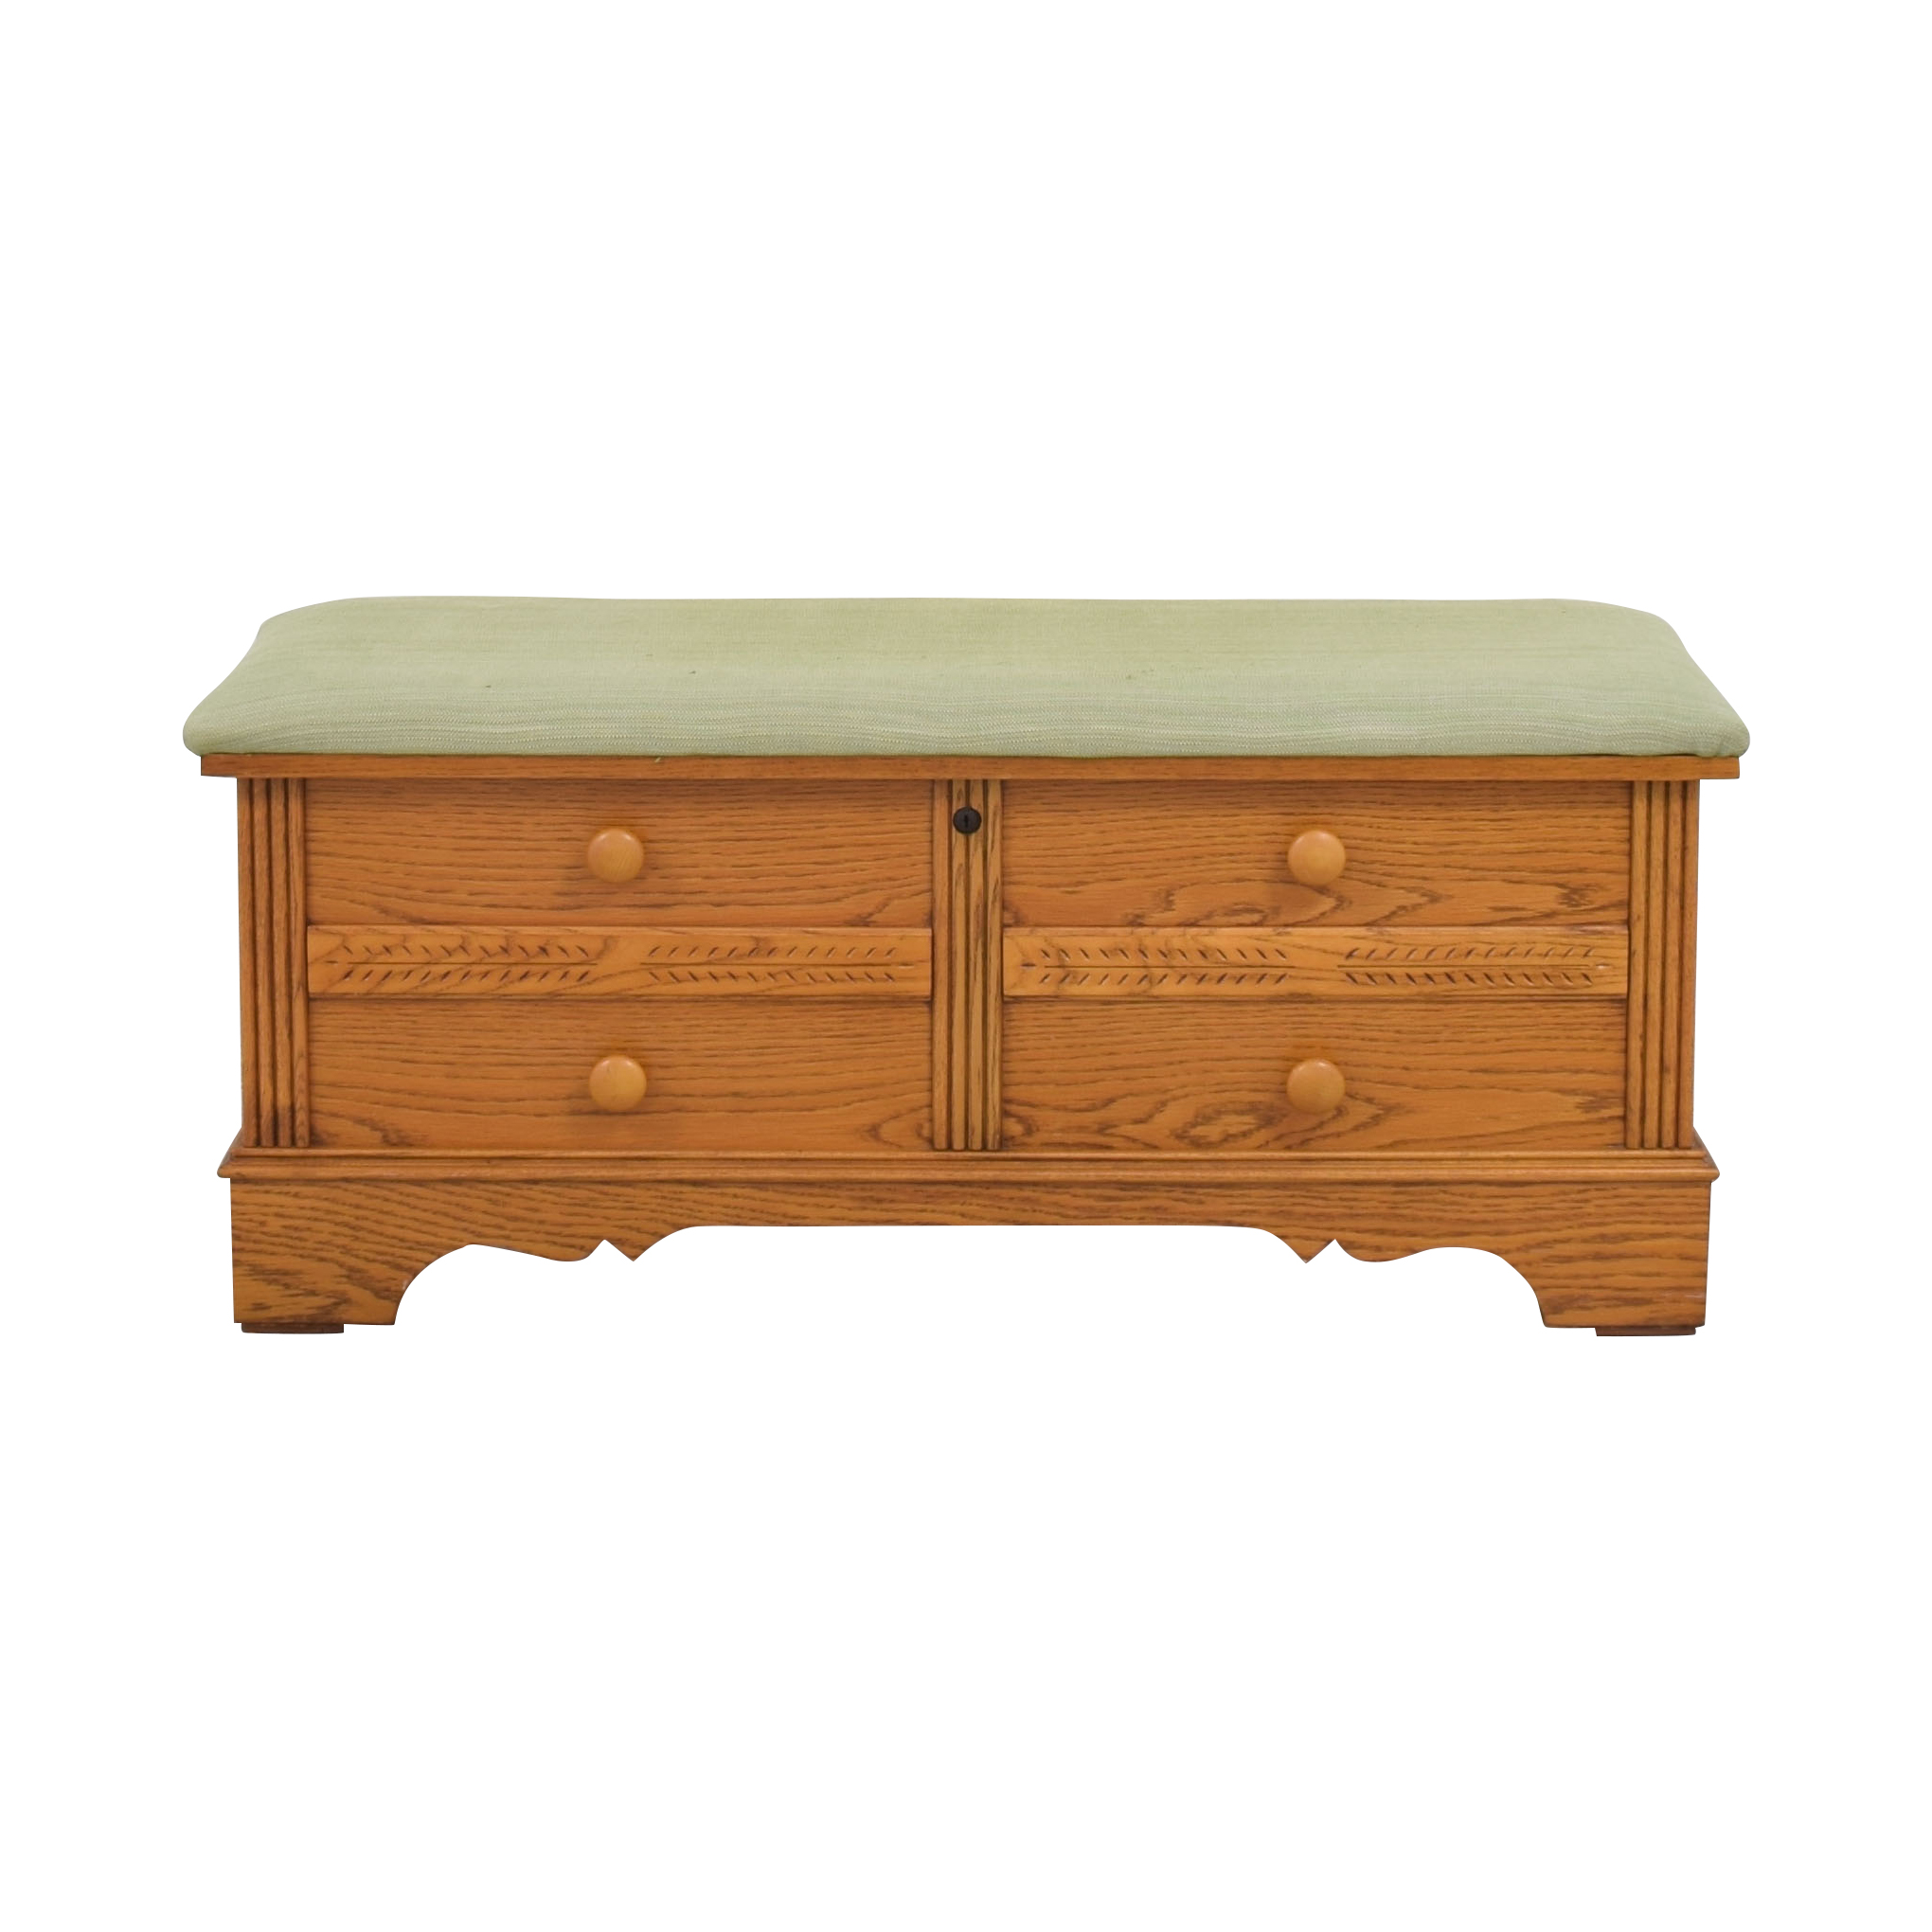 Lane Furniture Lane Hope Chest discount